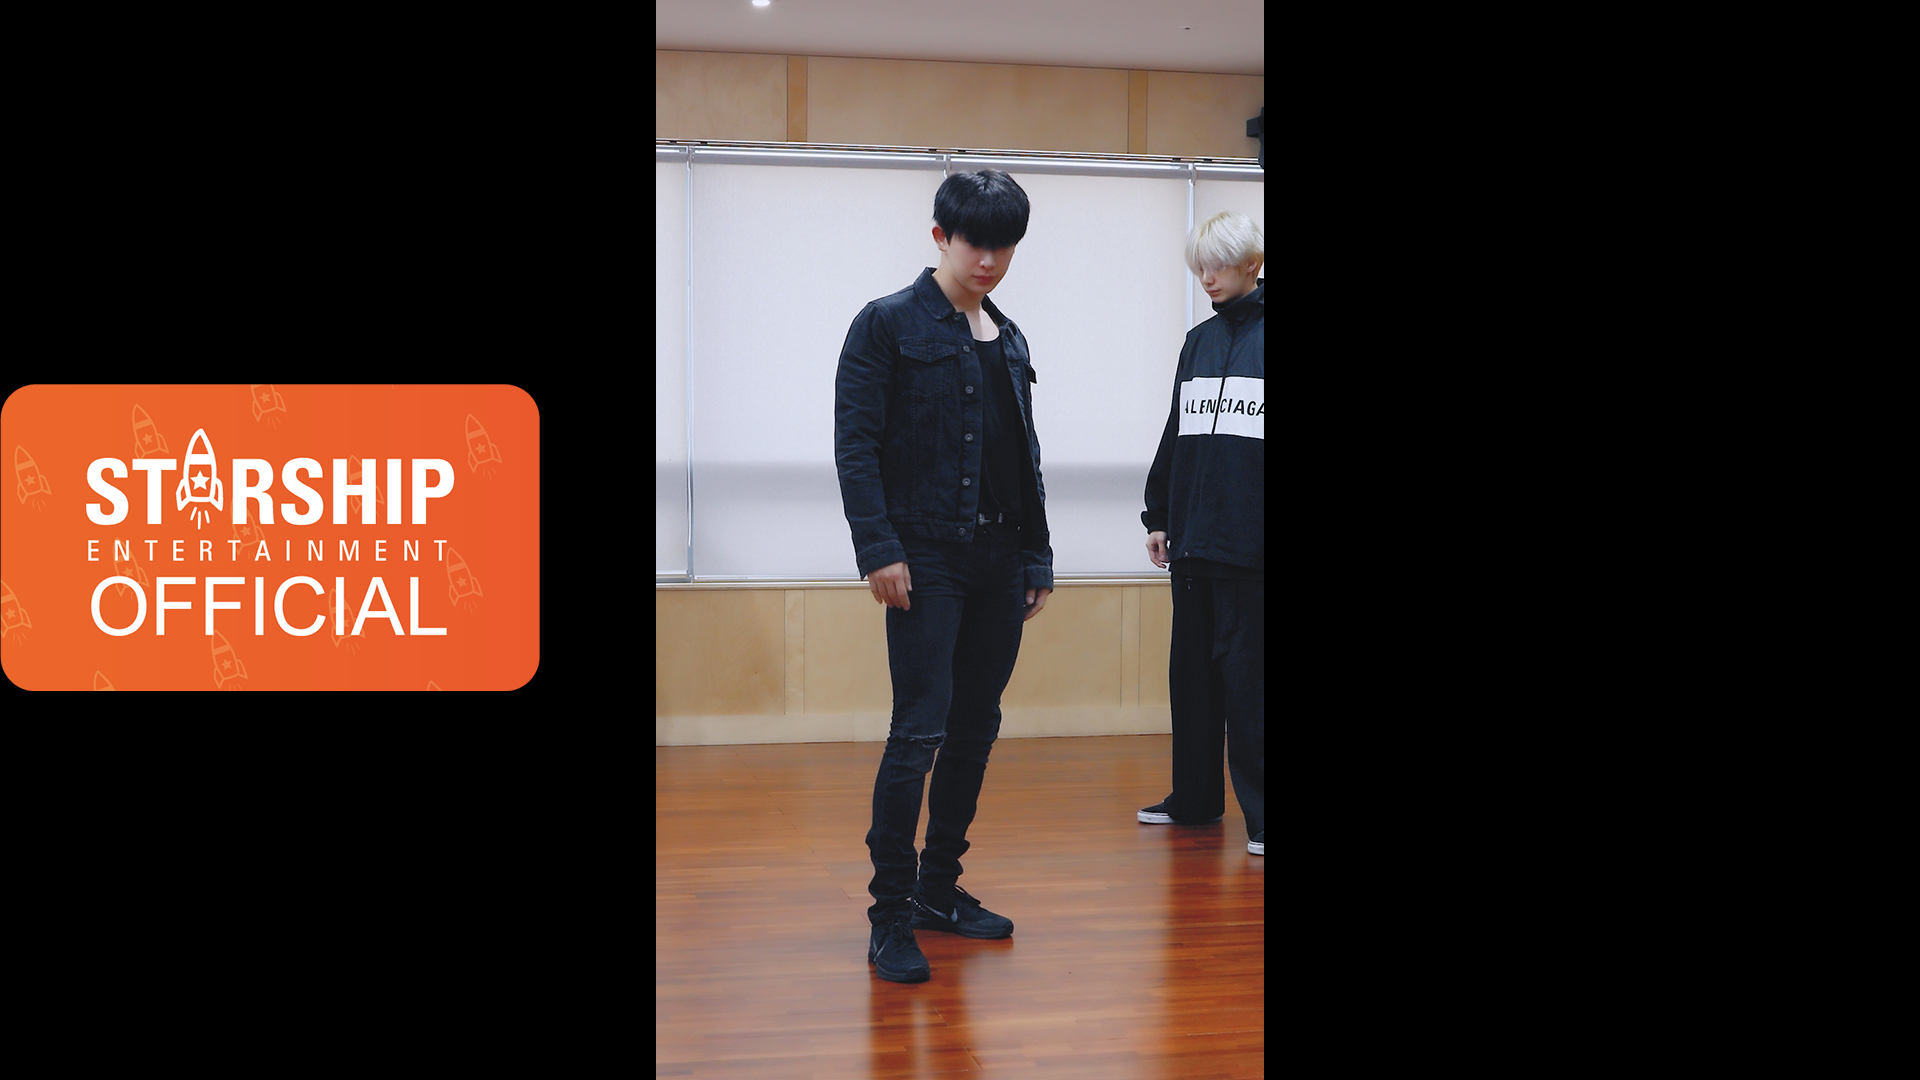 [WONHO][Dance Practice] 몬스타엑스 (MONSTA X) - 'SHOOT OUT' Vertical Video